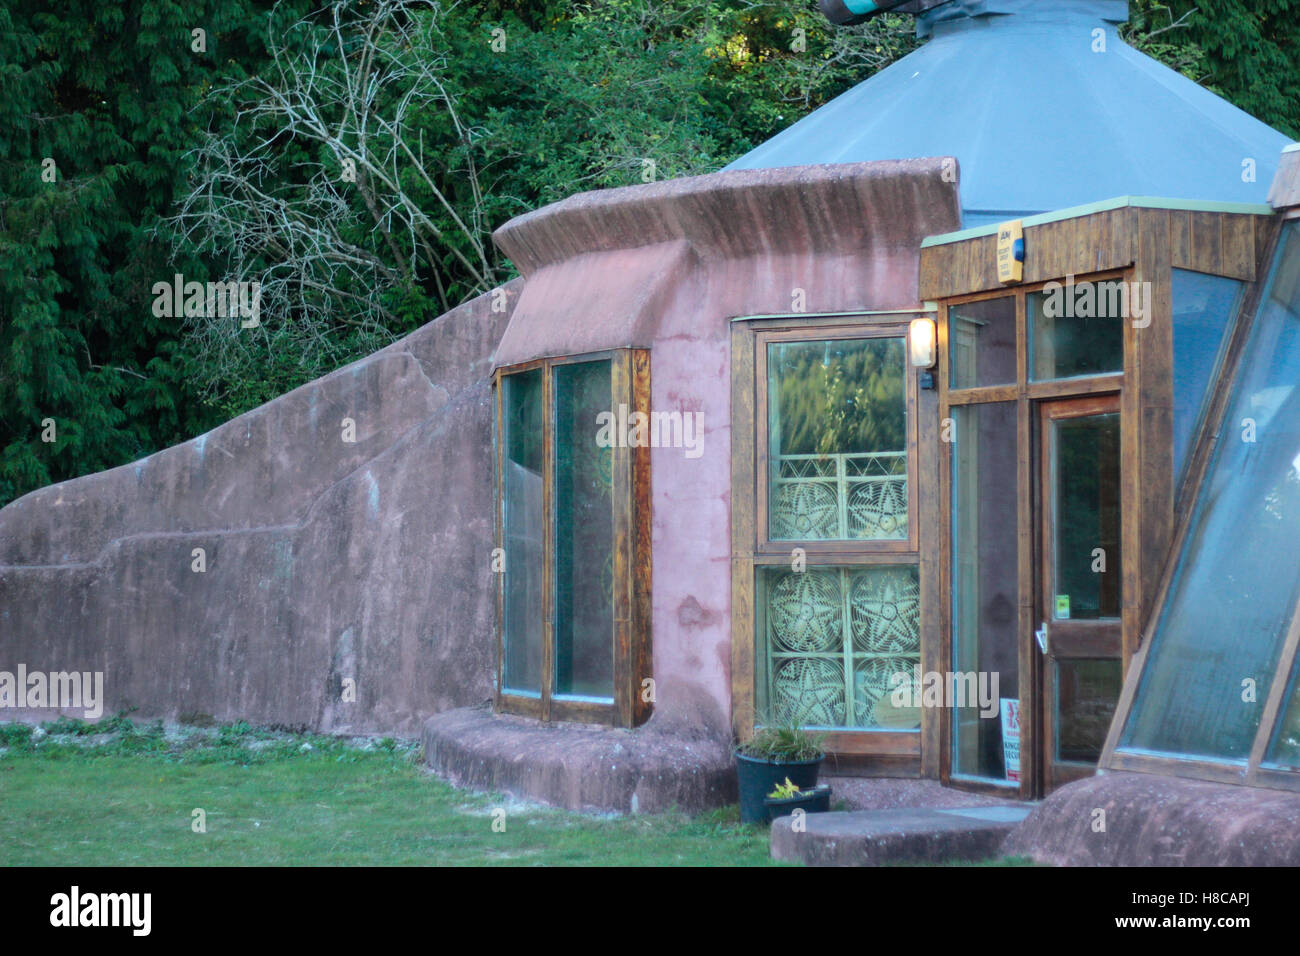 Part of front of self-sufficient Earthship building at Stanmer Park, Brighton based on design by Mike Reynolds - Stock Image